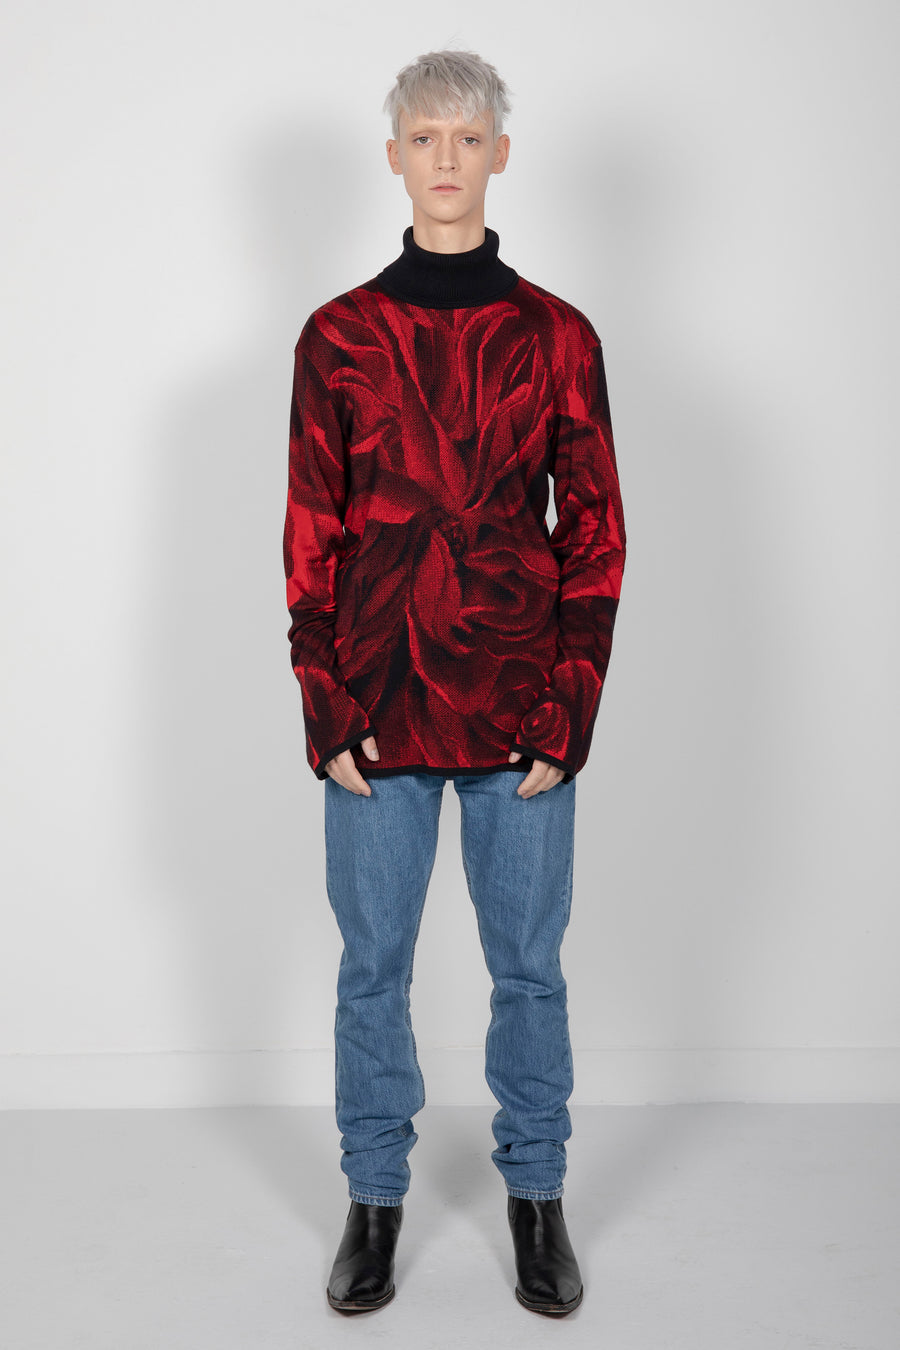 Rollneck Red Rose Jacquard